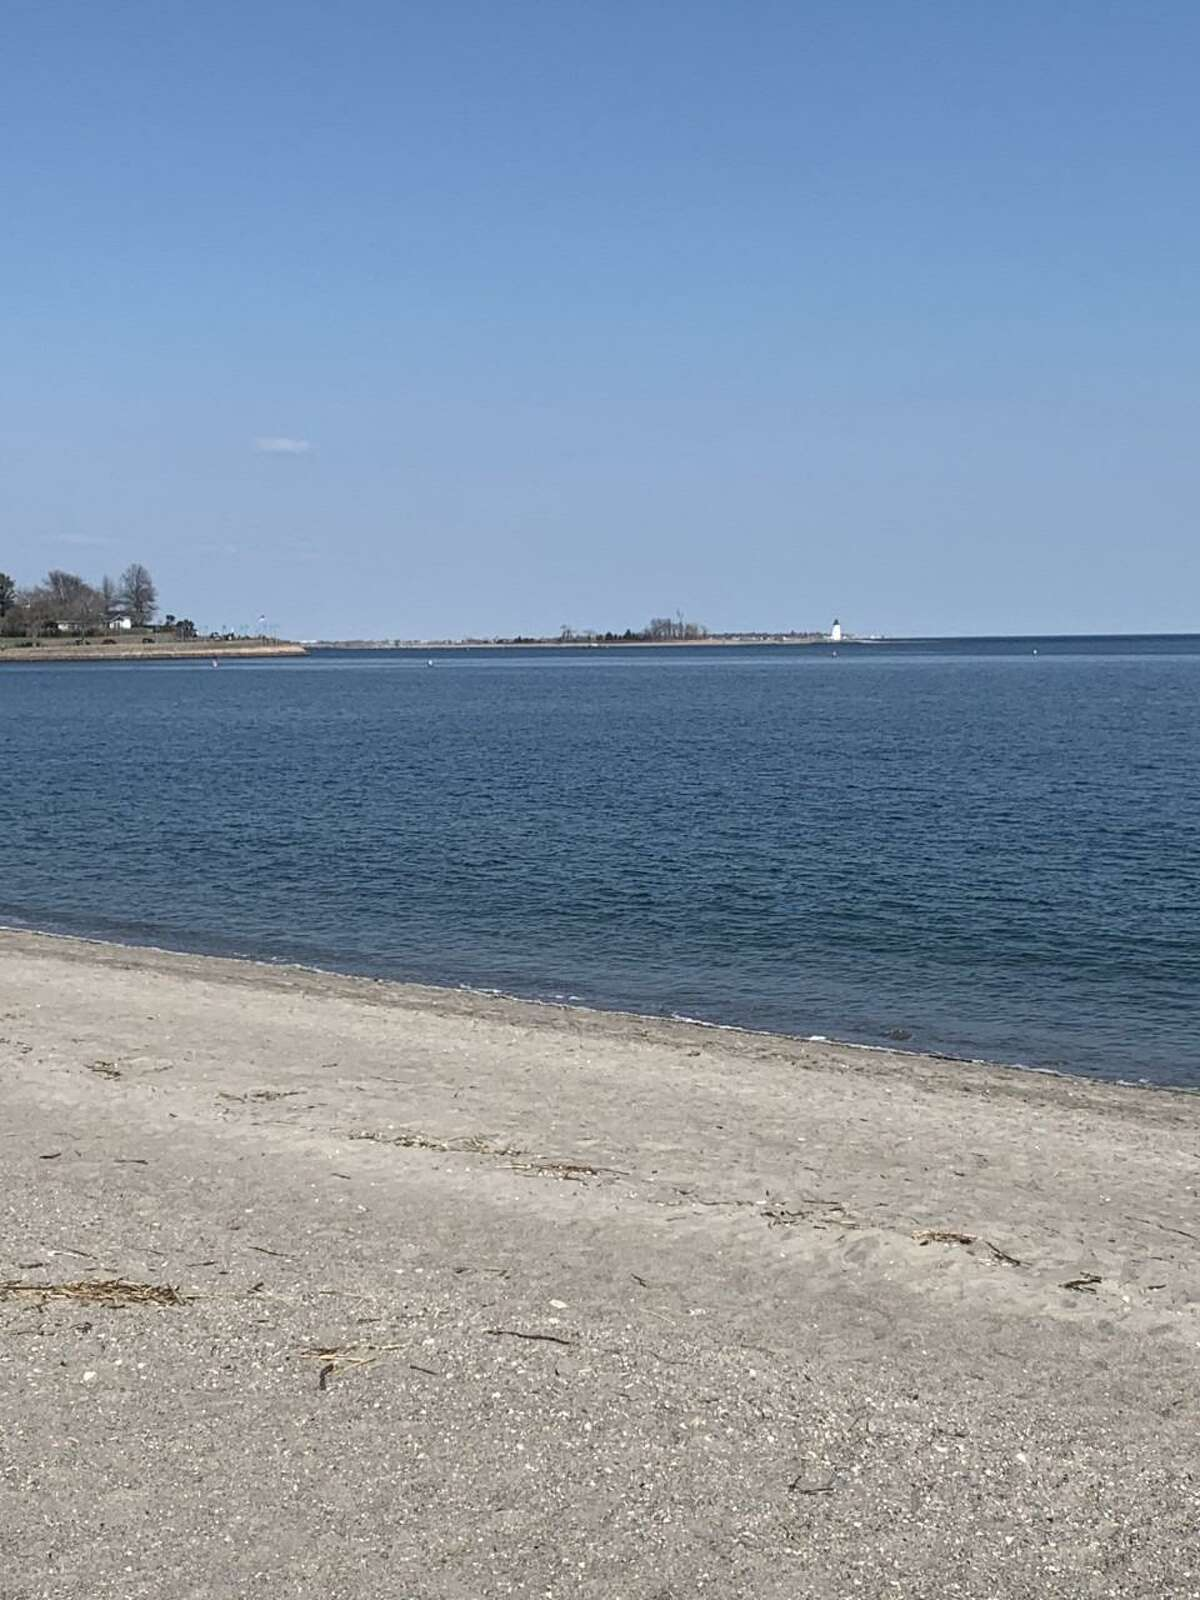 Matthew Podolsky, who is a Fairfield resident, emailed Hearst Connecticut Media this photograph, Sunday, April 4, 2021, of the nice, and windy afternoon on Easter 2021, Sunday, April 4, 2021, at 4:18 p.m., at Jennings Beach in Fairfield.